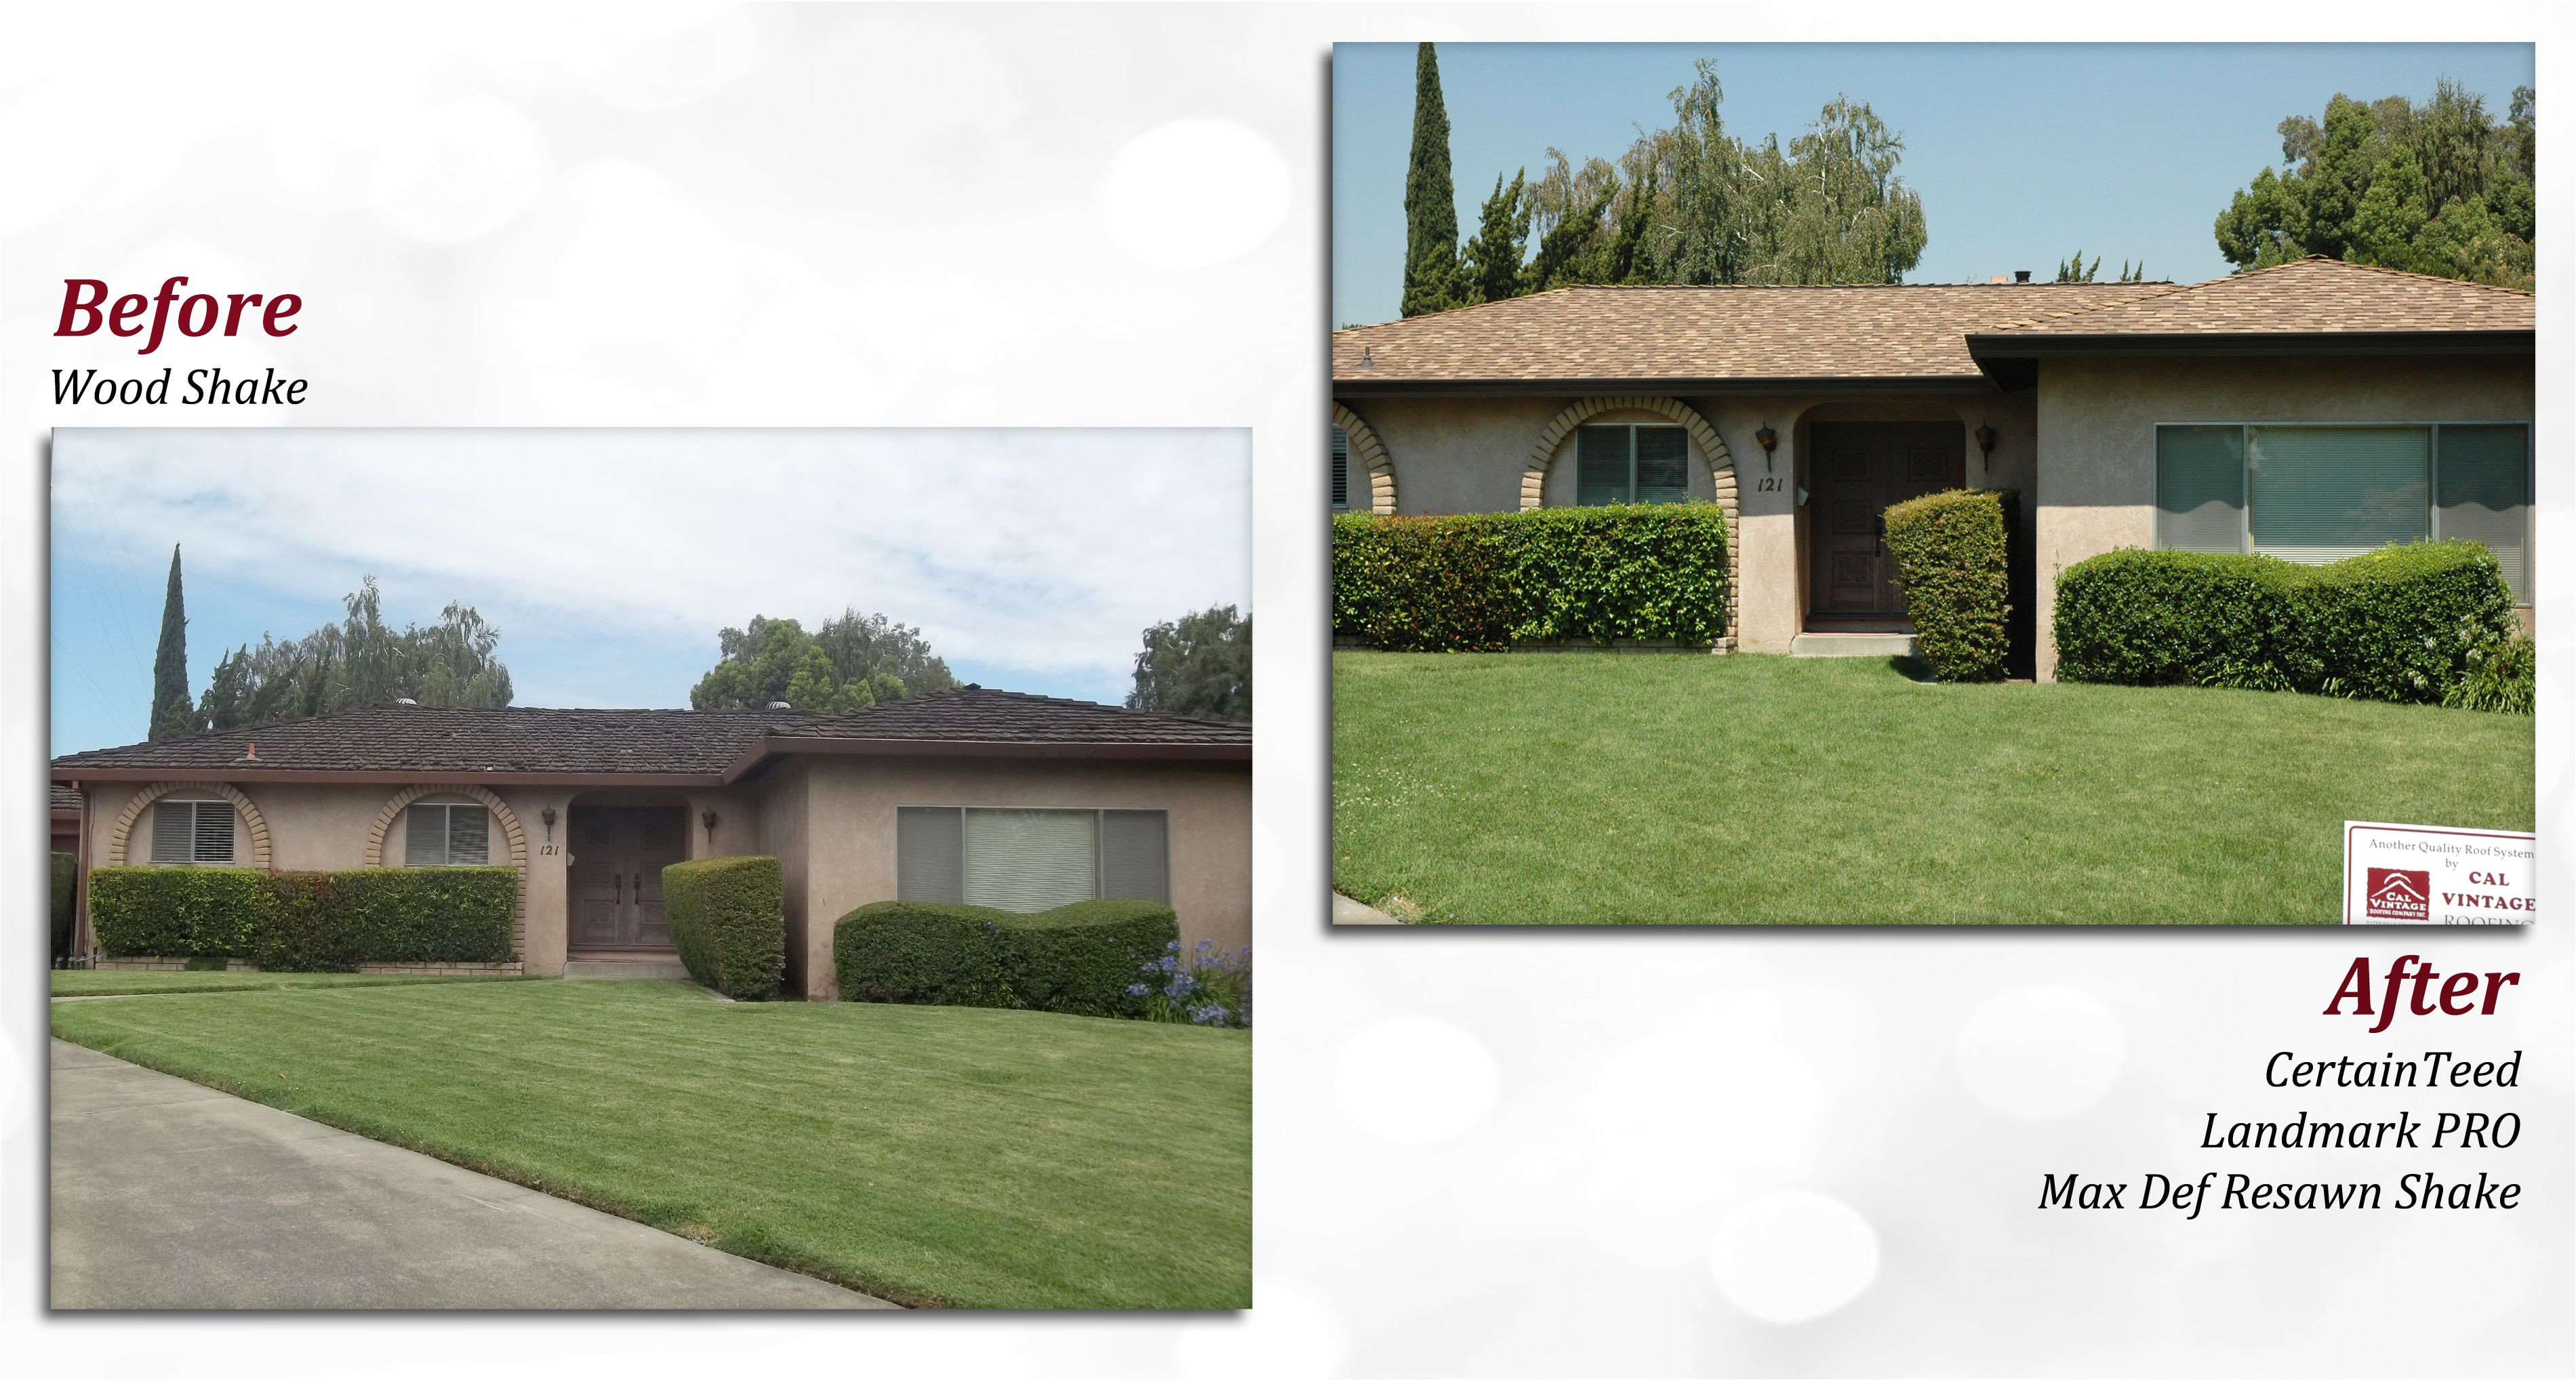 before after of a certainteed roof profile landmark pro color max def resawn shake